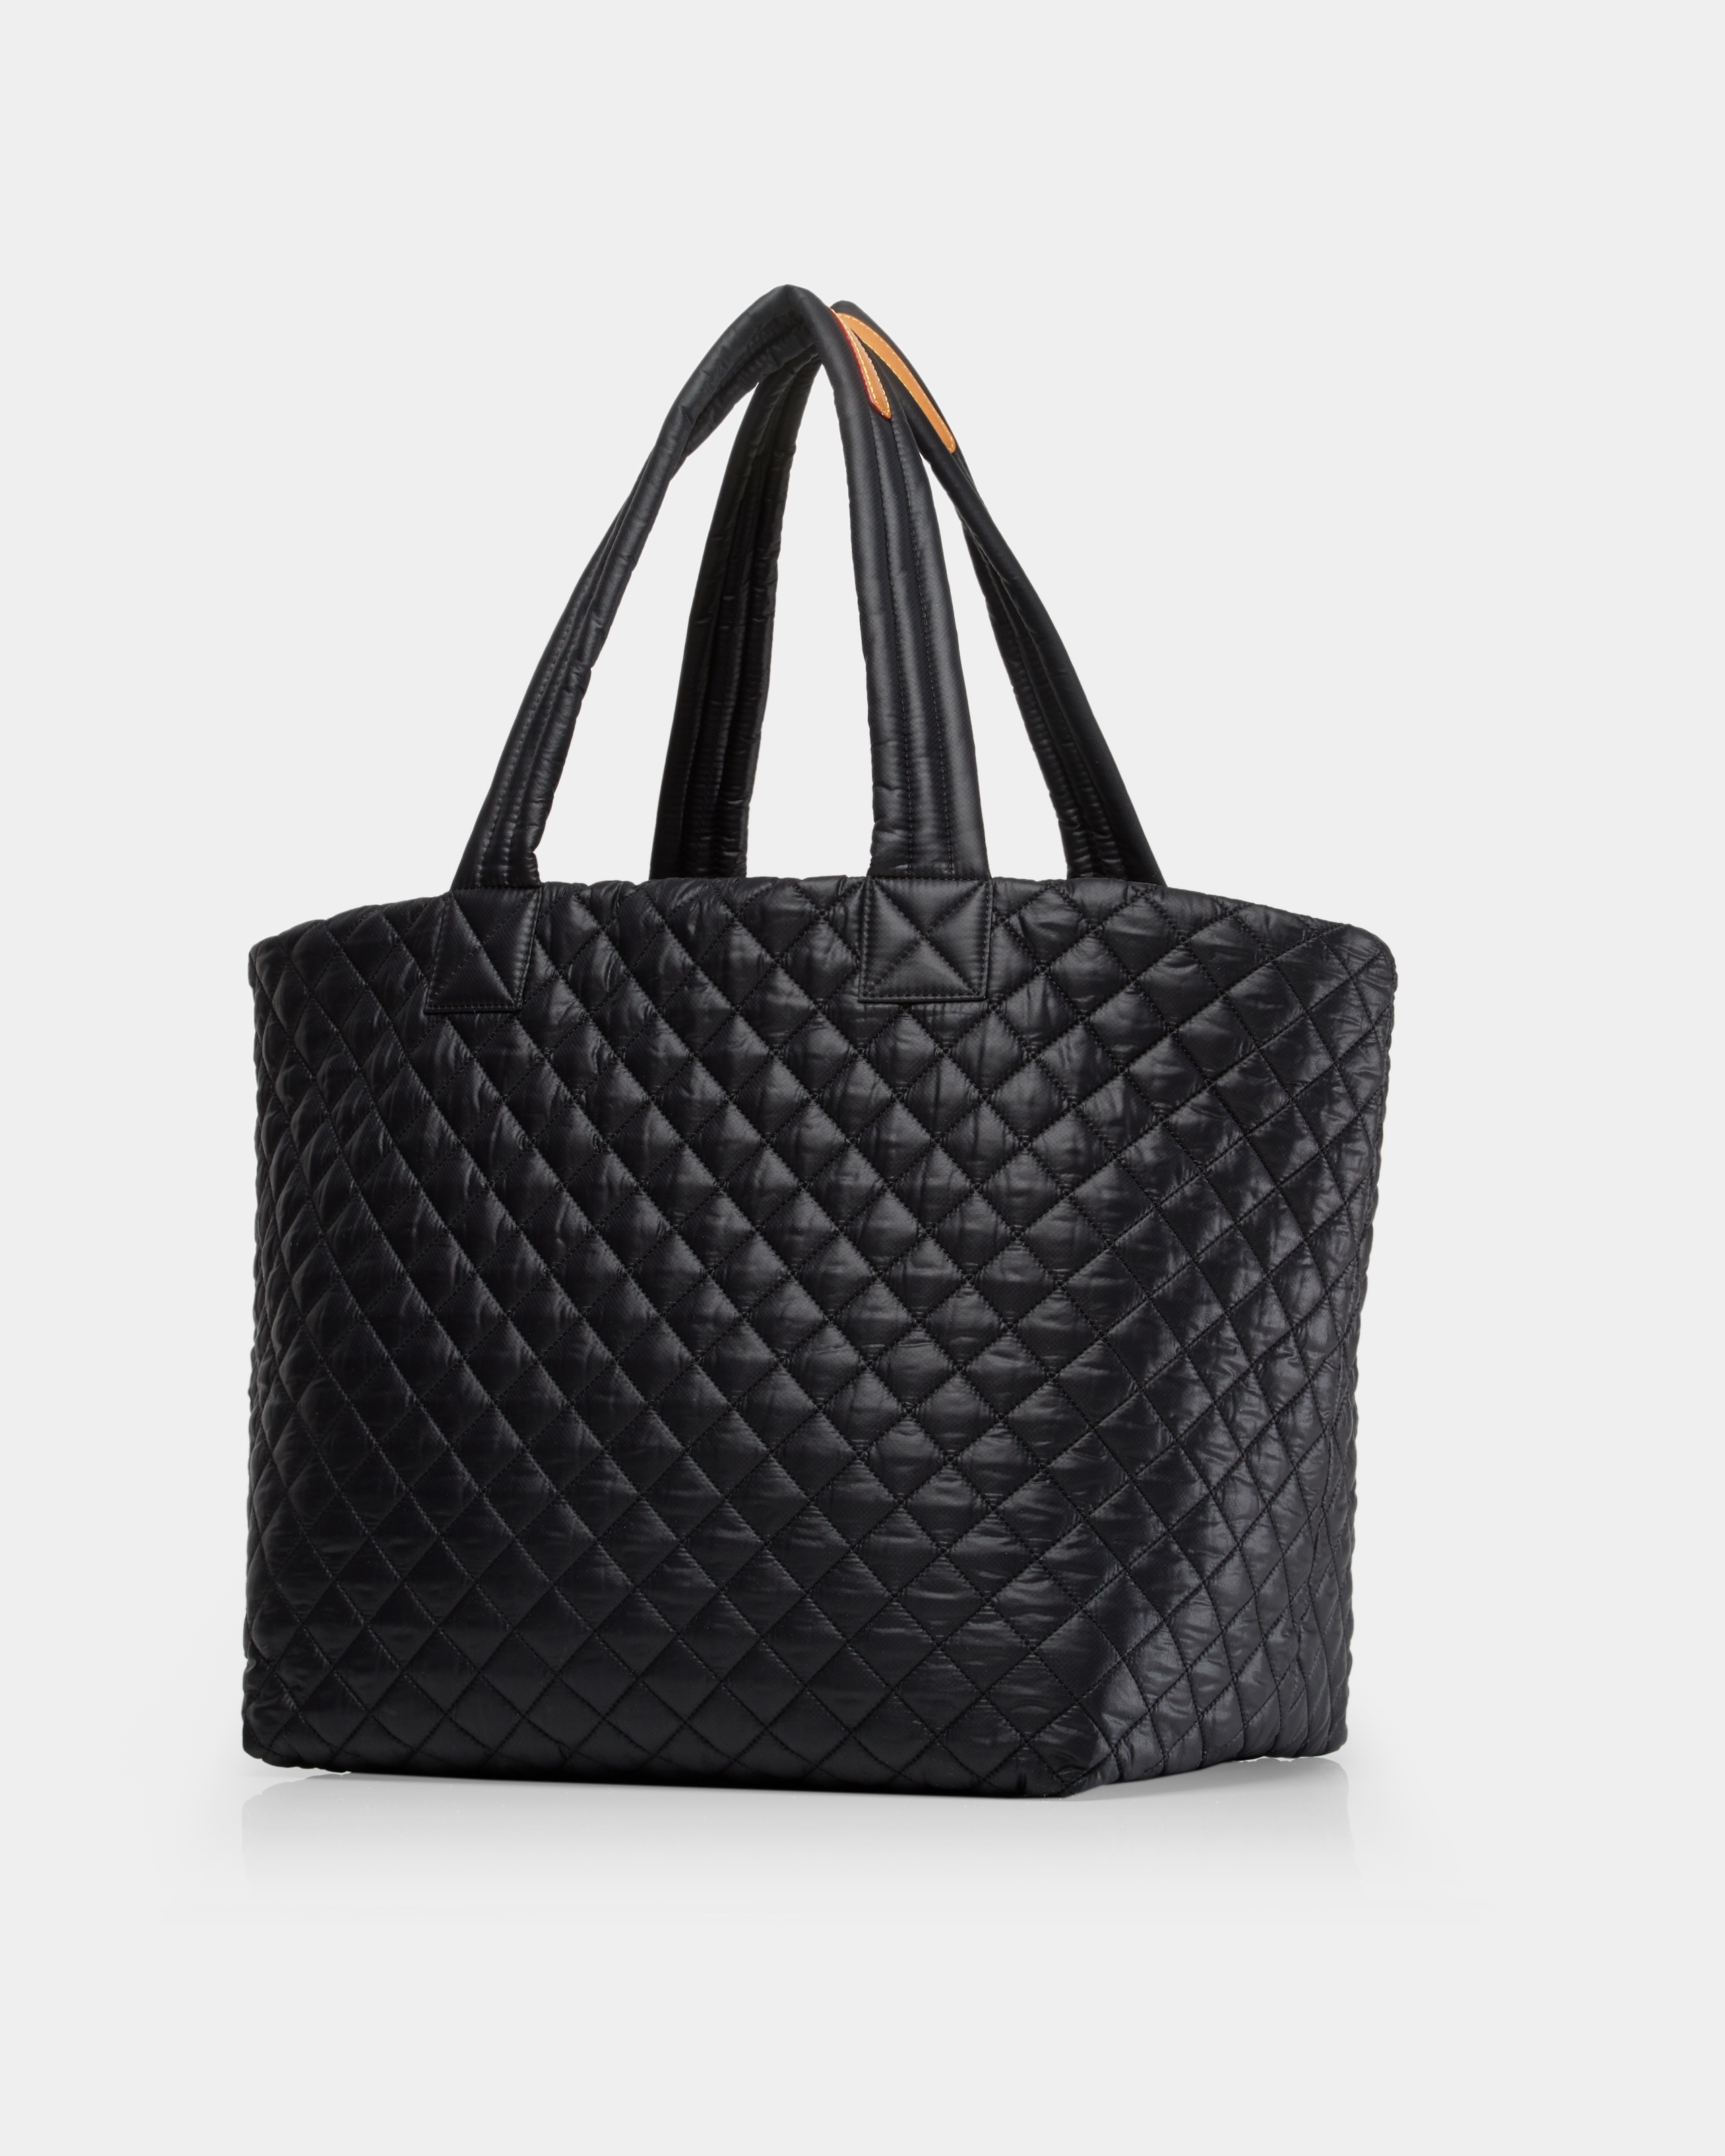 Large Metro Tote - Black Quilted Oxford Nylon (3710108) in color Black